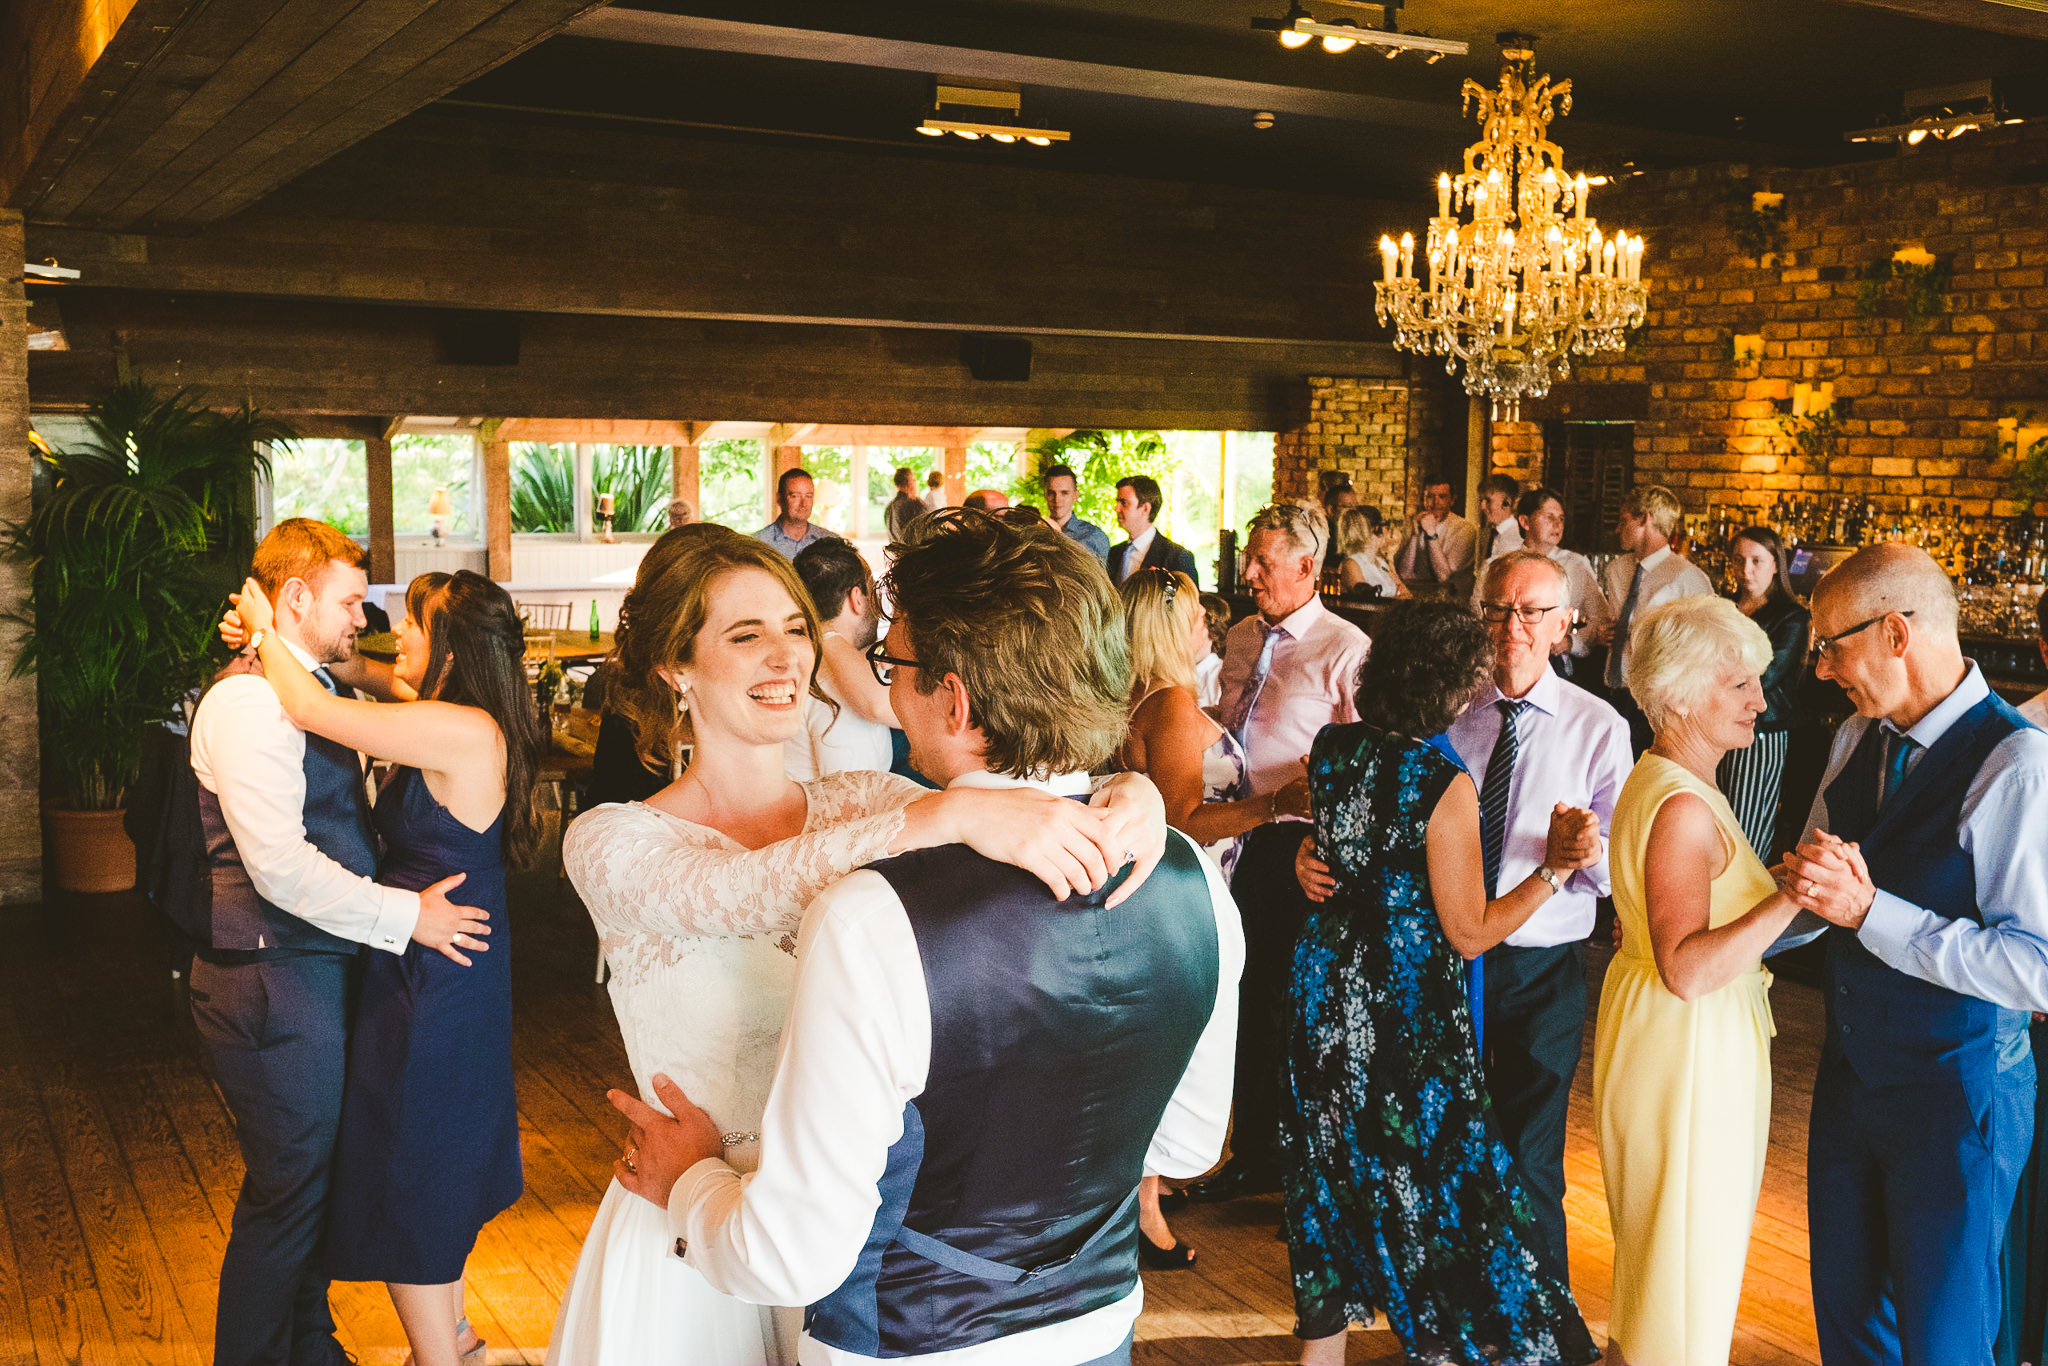 Bride and groom first dance at Newton Hall as guests look on